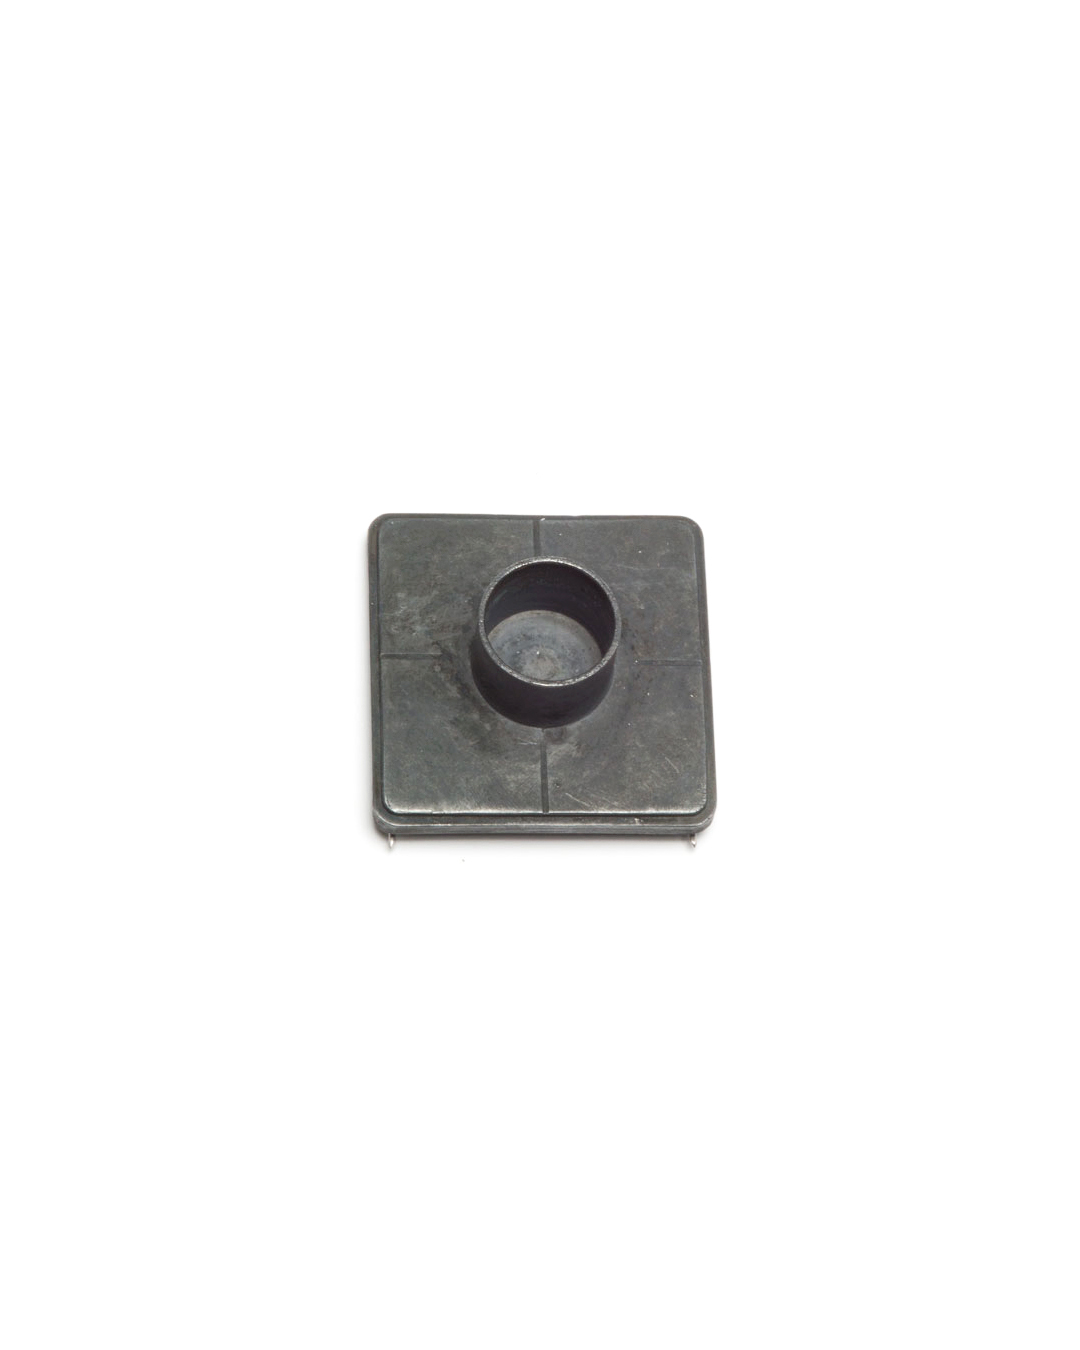 Winfried Krüger, untitled, 2007, brooch; oxidised silver, 40 x 40 x 13 mm, €920